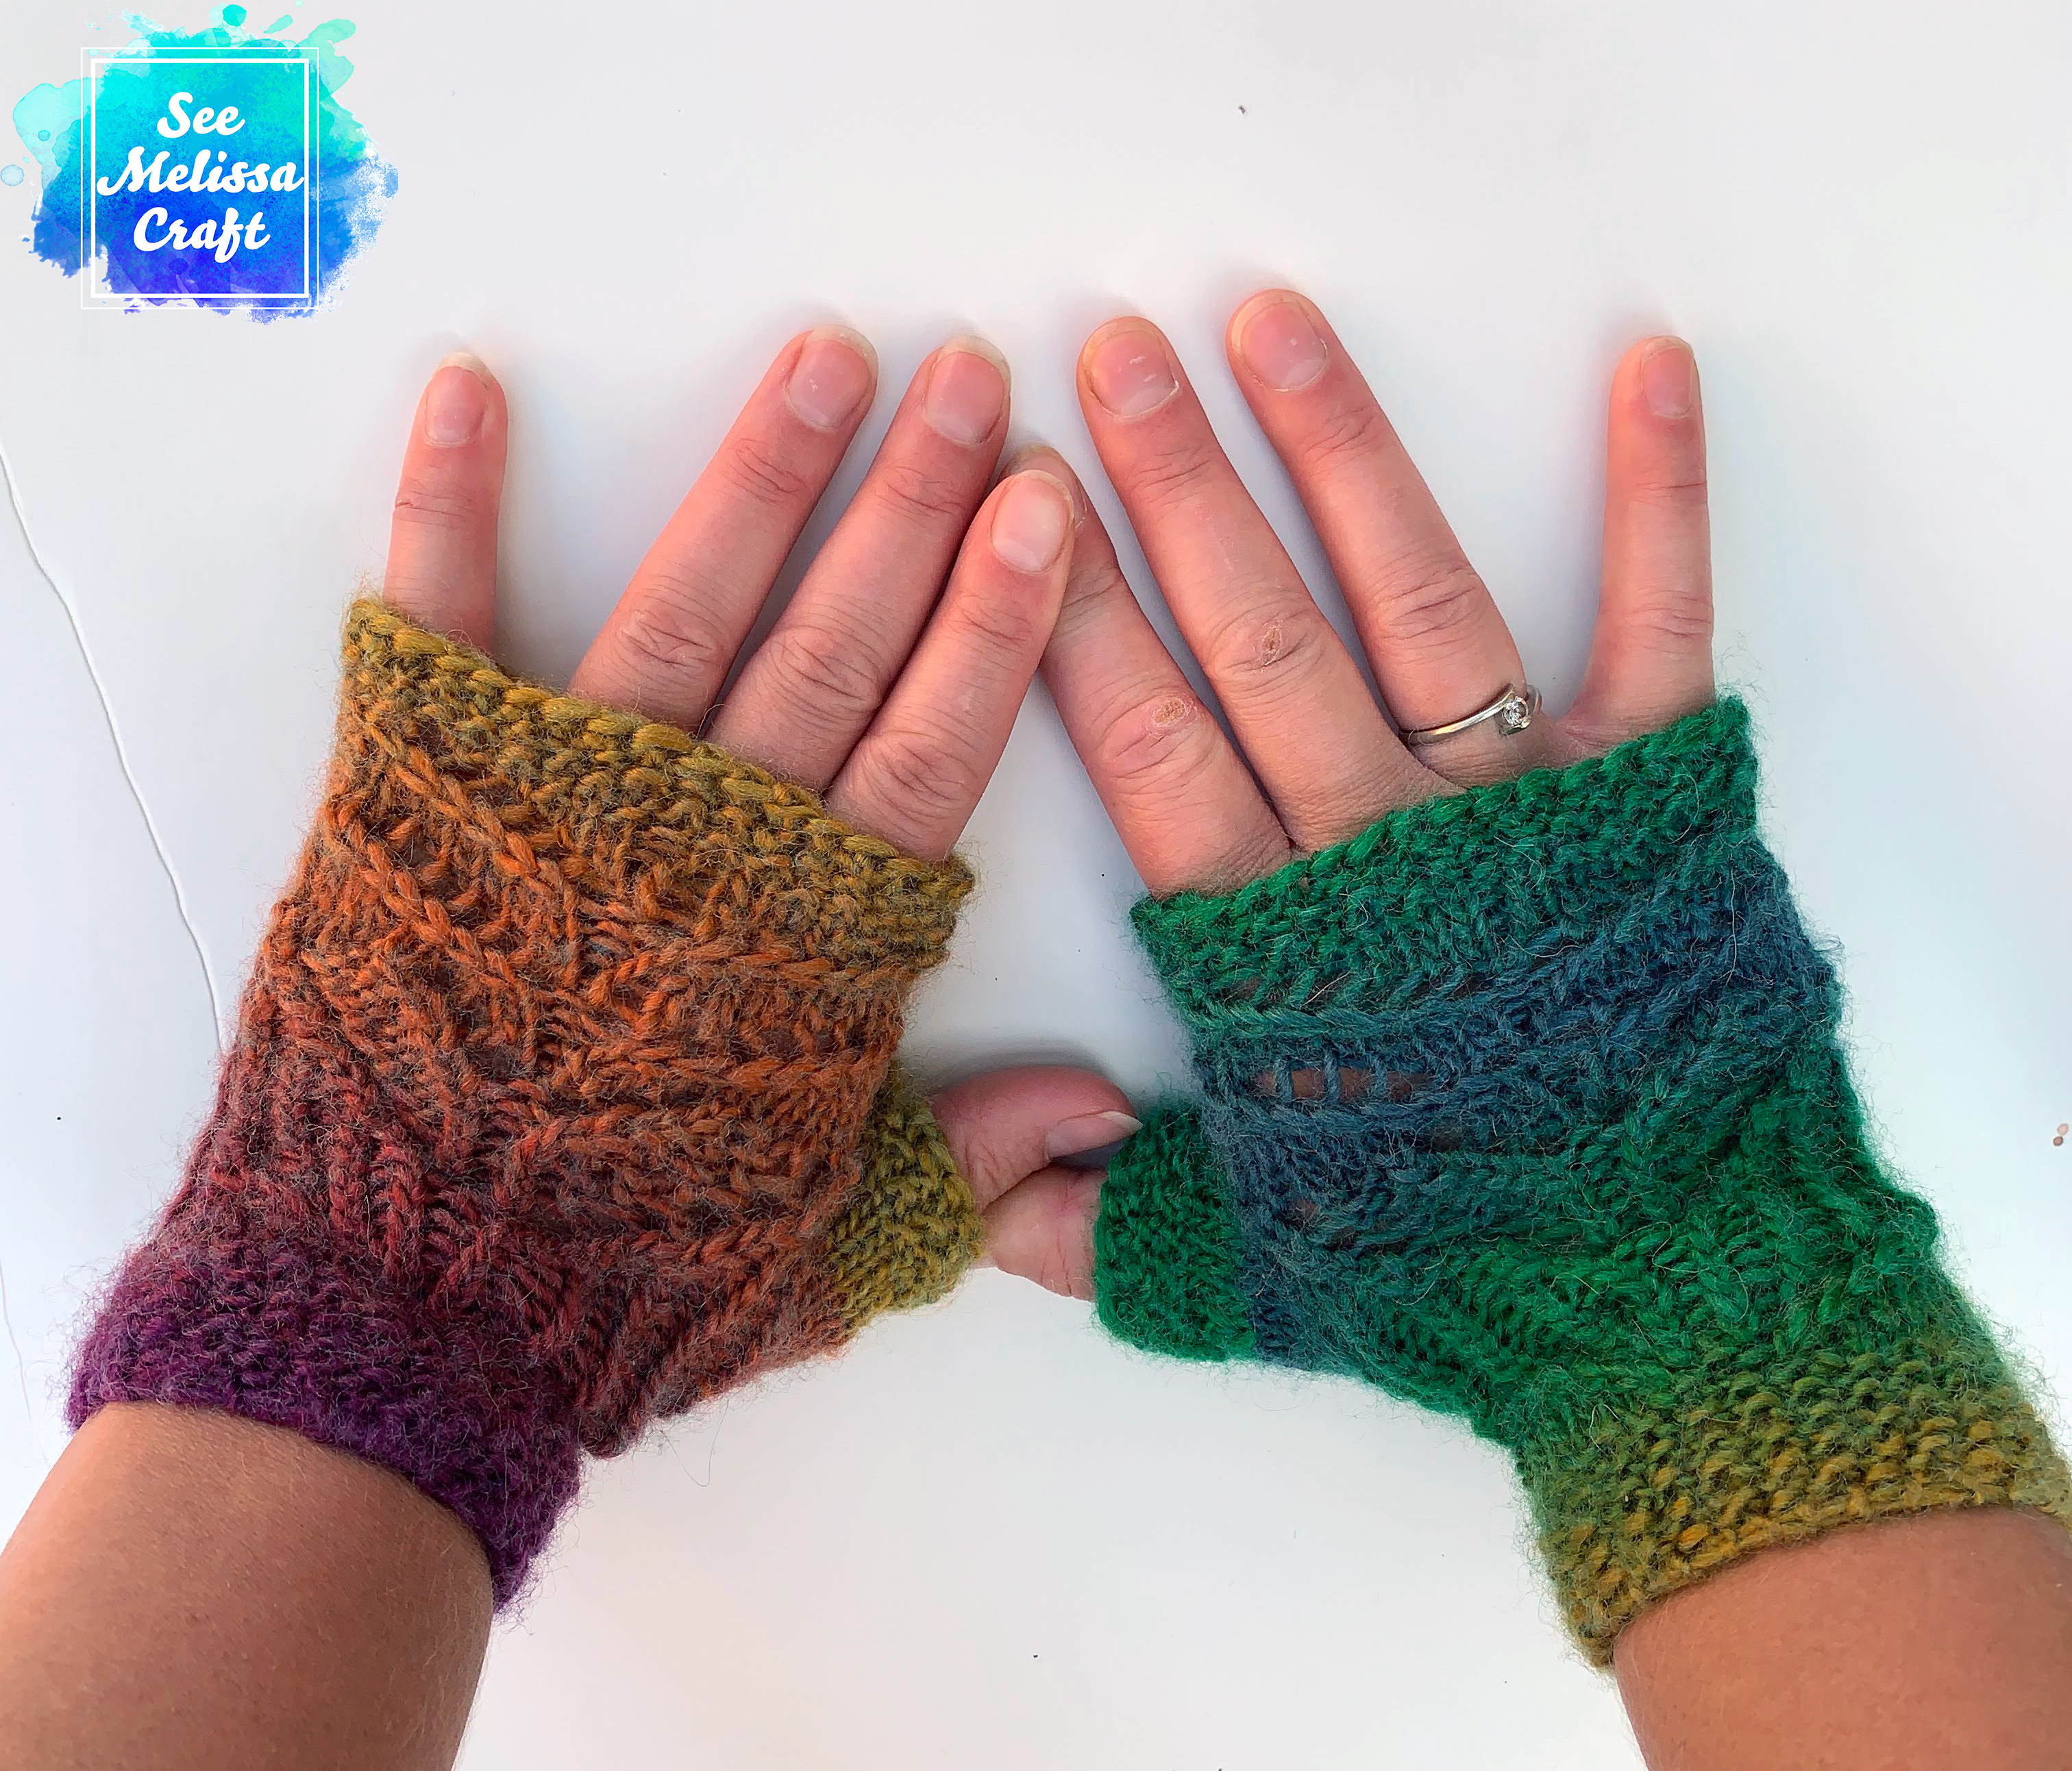 Pixie Fingerless Gloves Knit Pattern – Paid